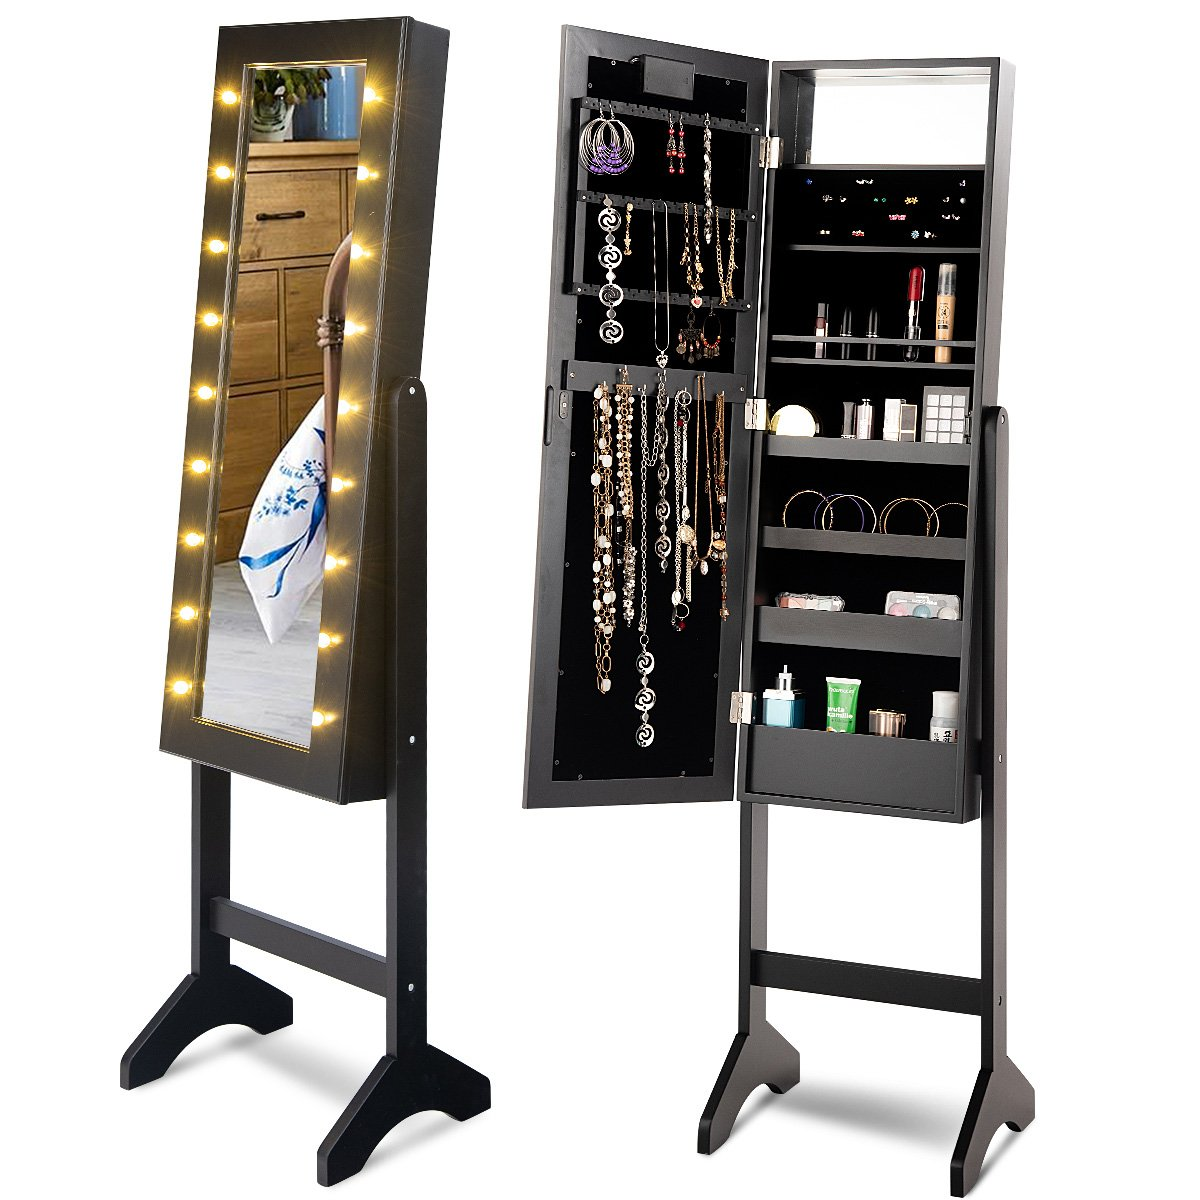 Giantex Mirrored Jewelry Cabinet Armoire Storage Organizer for Rings, Earrings, Bracelets, Broaches, Cosmetics Free Standing Full Length Mirror w/ 18 LED lights (Black)